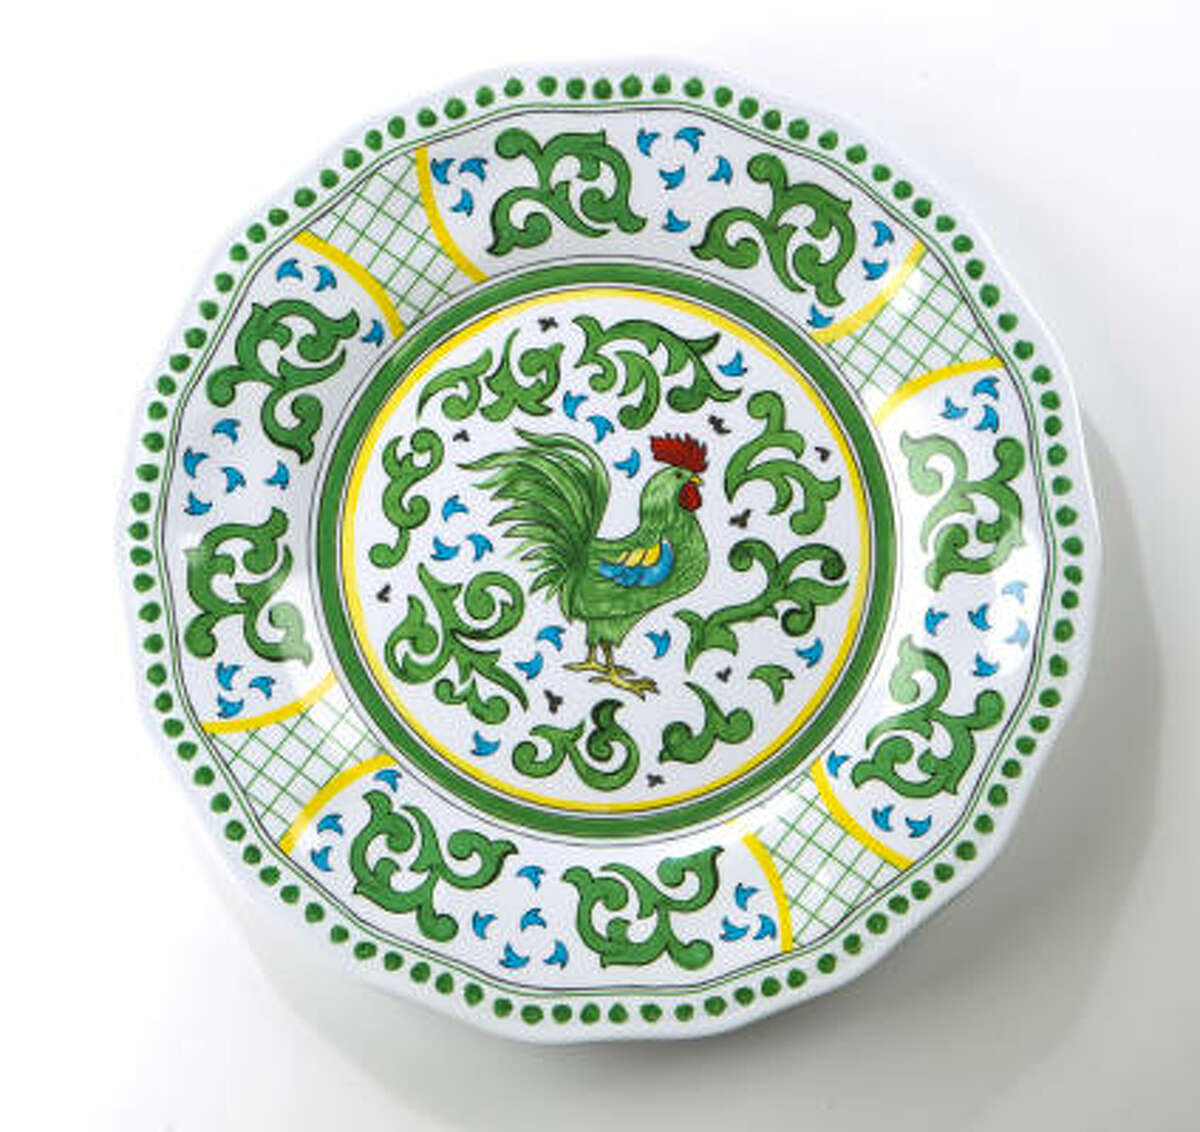 Rooster dinner plate, $9.95, Sur La Table.